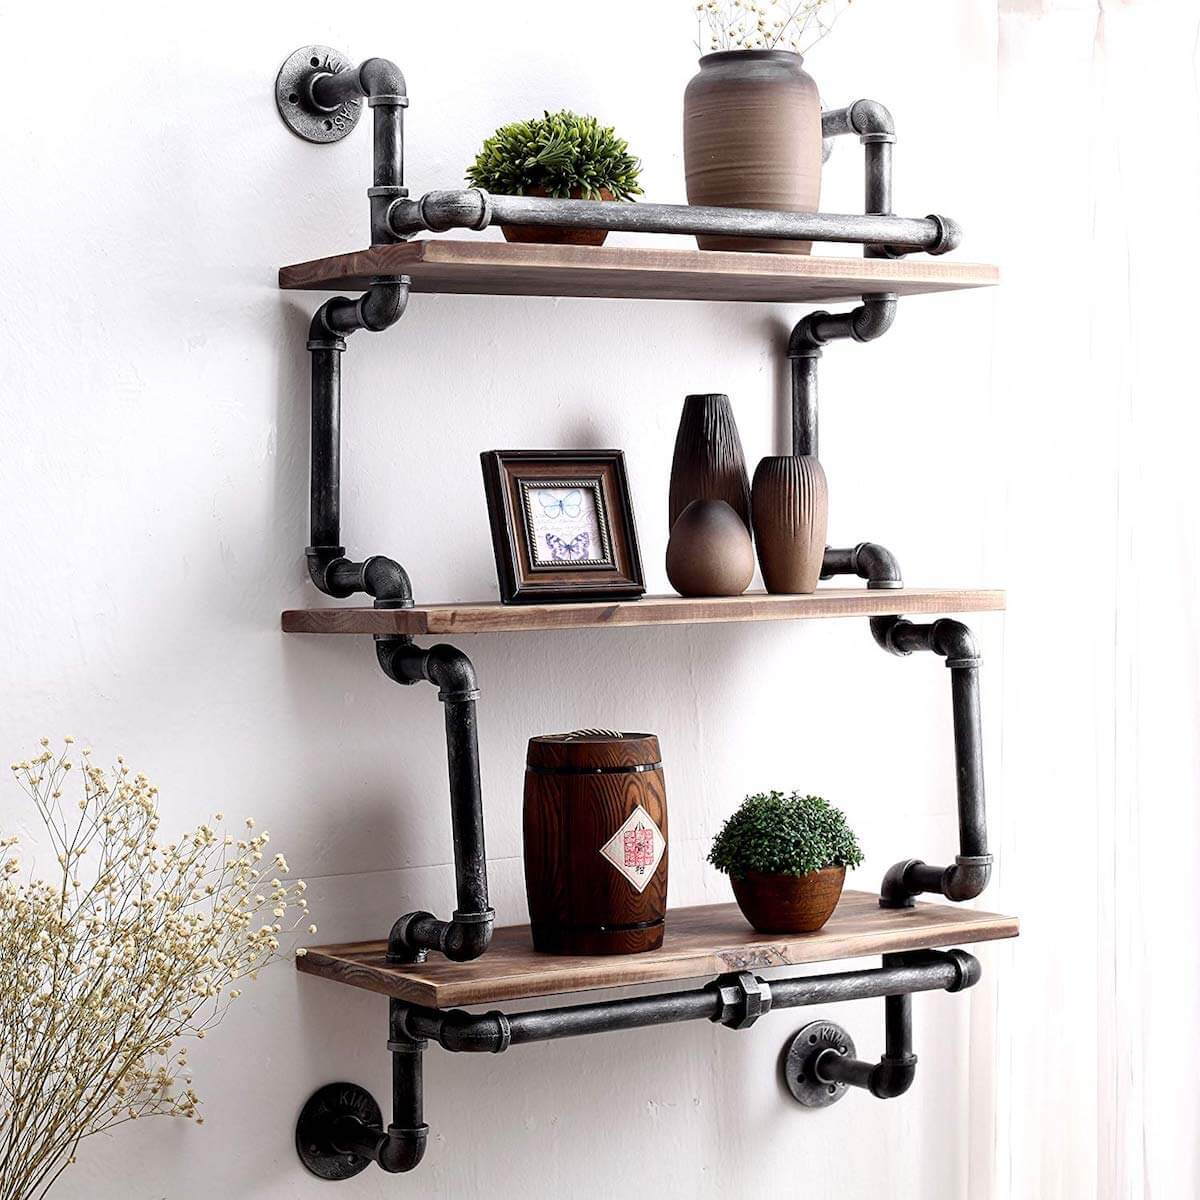 25 Pipe Shelves To Add Rustic Flair To Your Home • Insteading